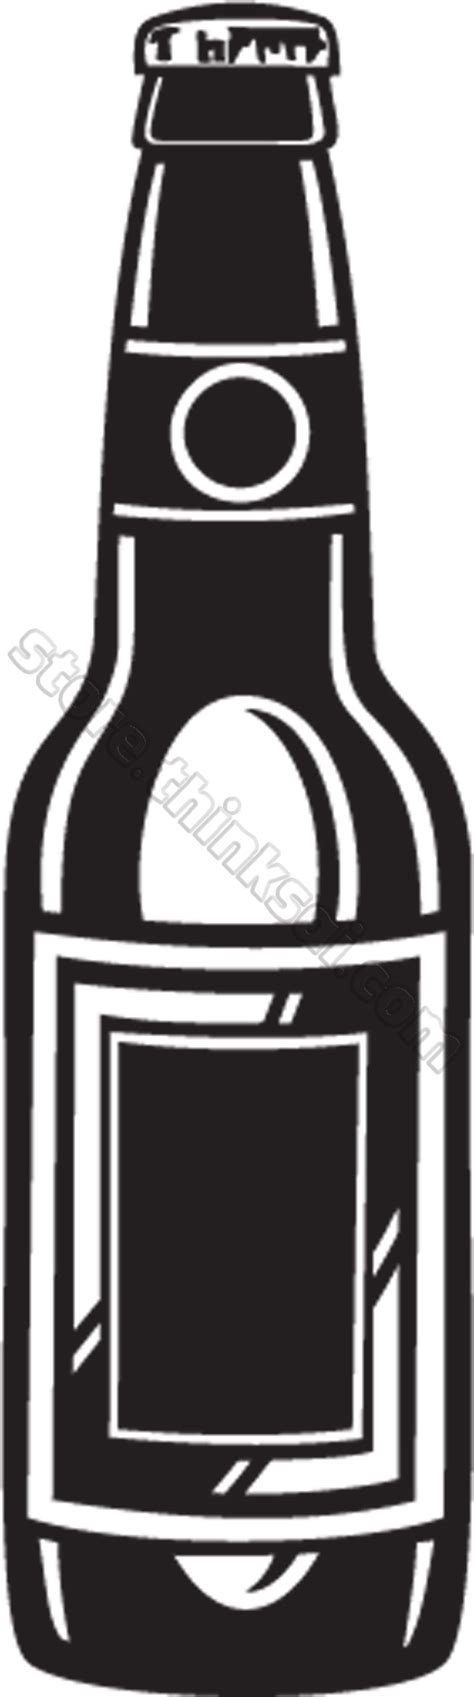 beer cartoon black and white beer mug beer bottle clip art cliparting com